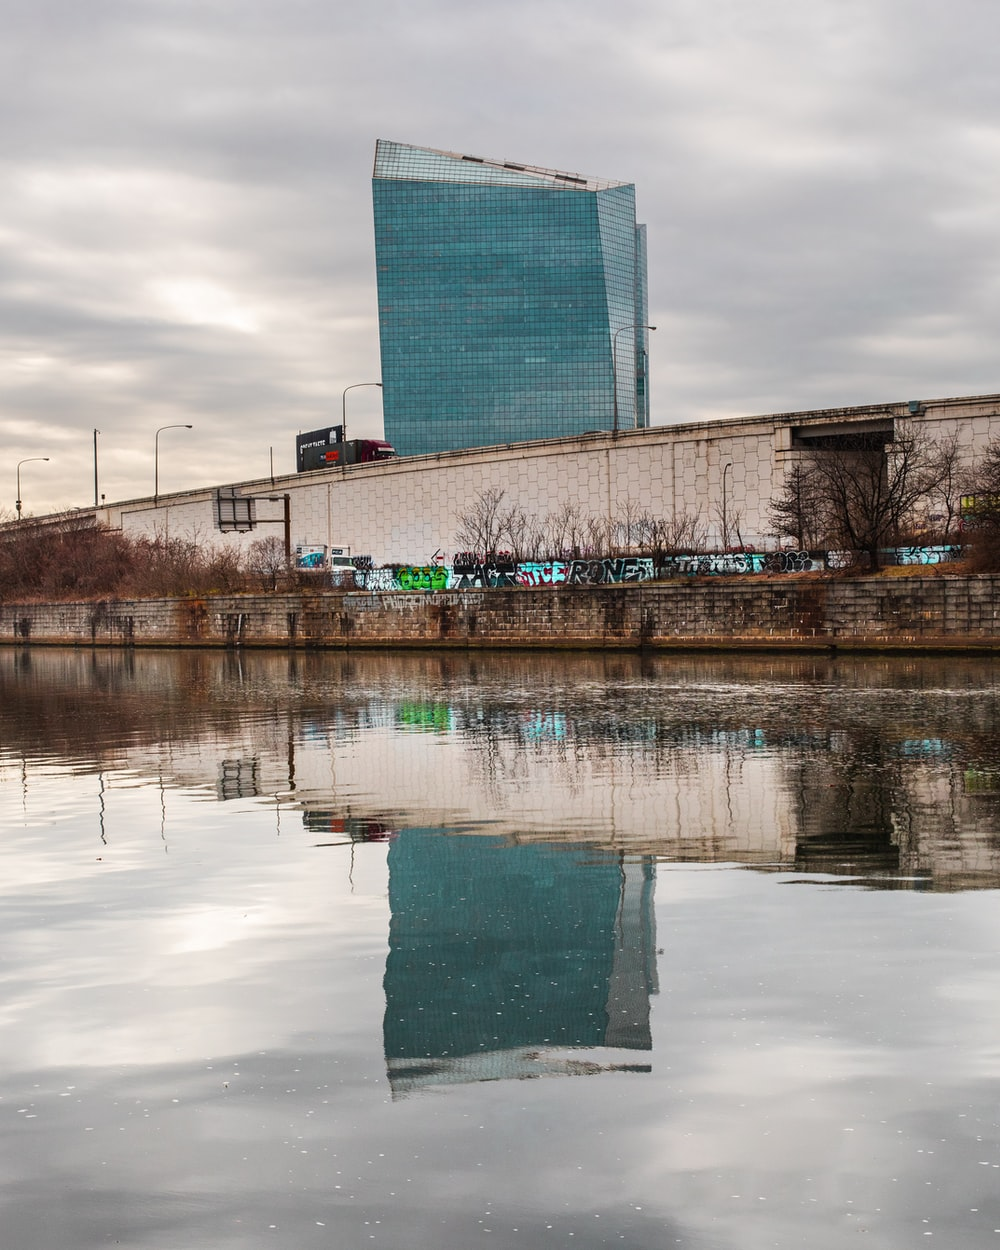 gray building near body of water during daytime